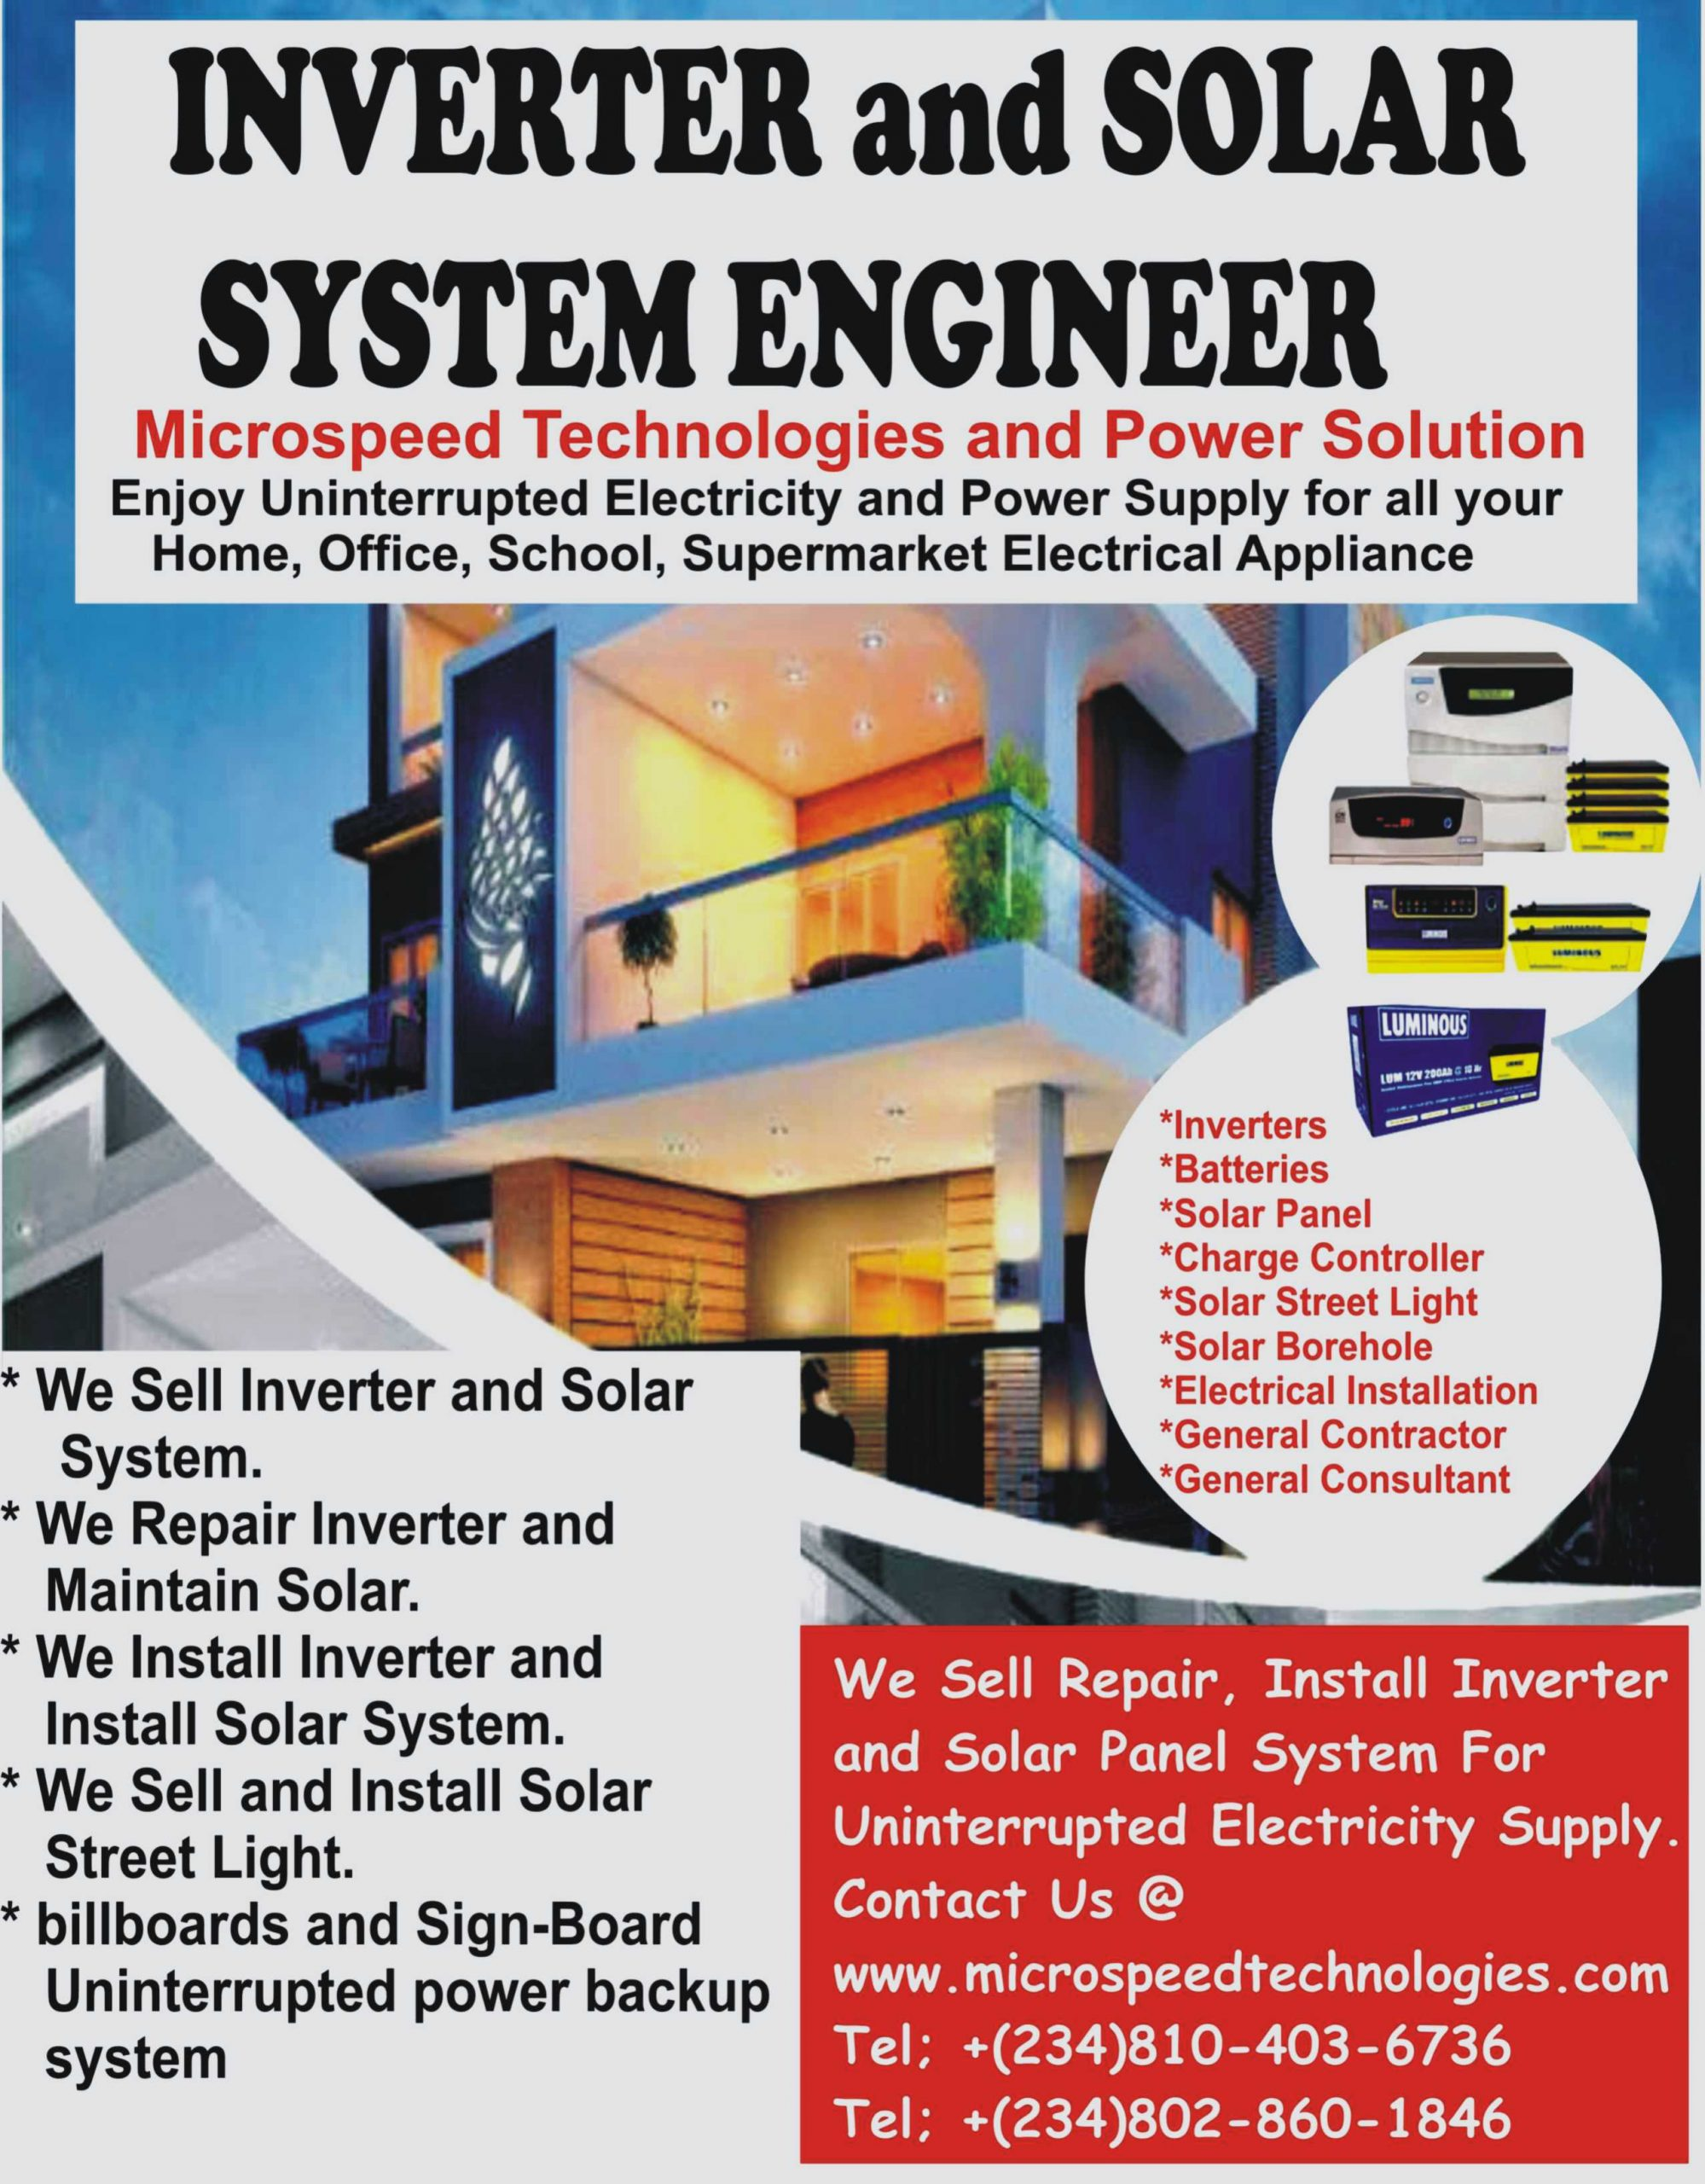 Inverter Installation Engineer - Home Wiring Diagram